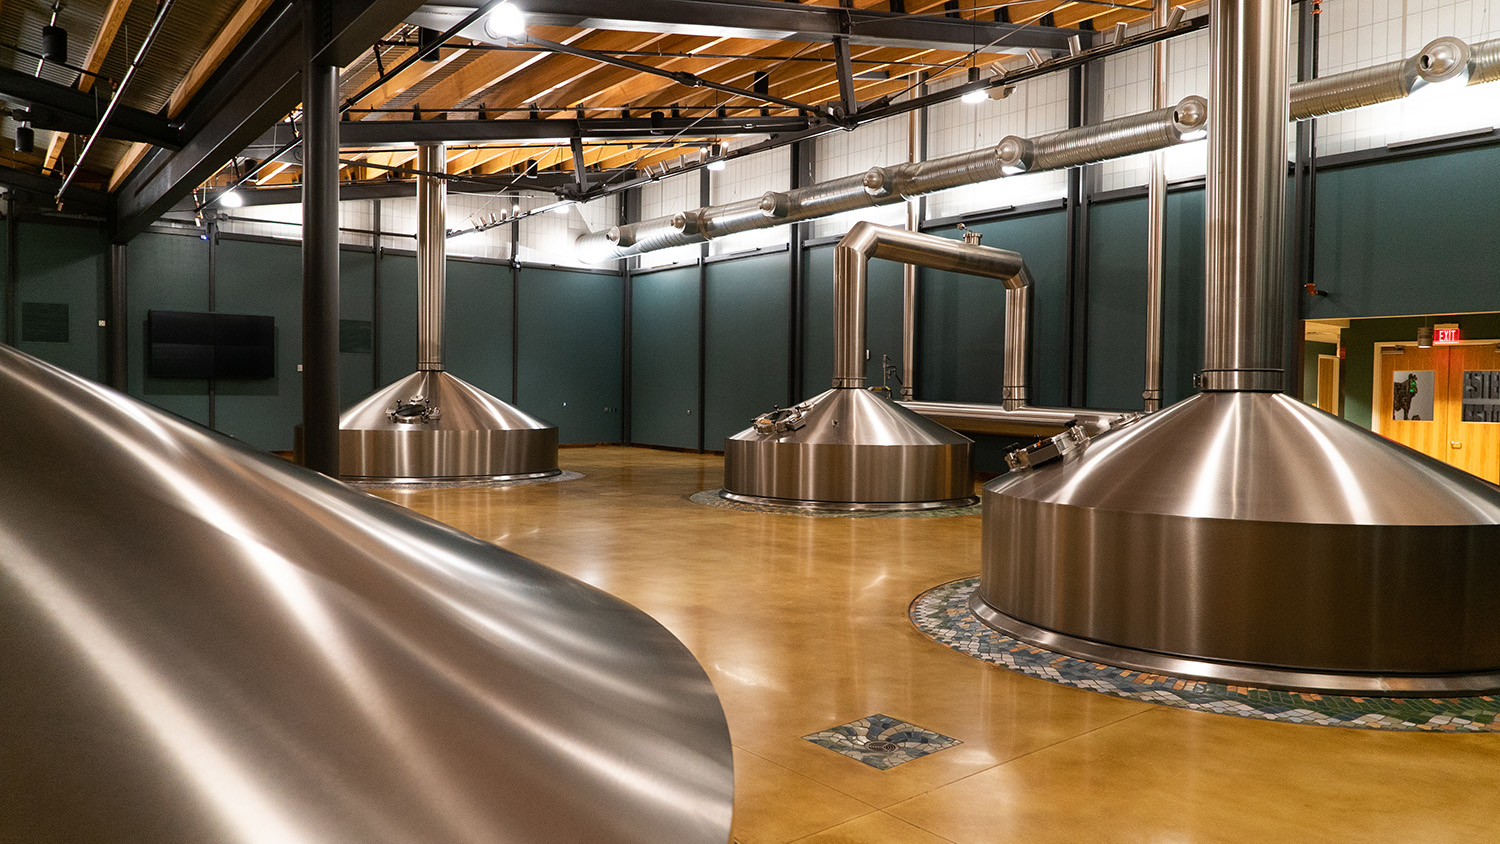 Steel tanks inside New Belgium's brewery in Asheville, NC - Old Tuffy to Feature New NC&#160 State Connection - Forestry and Environmental Resources NC State University